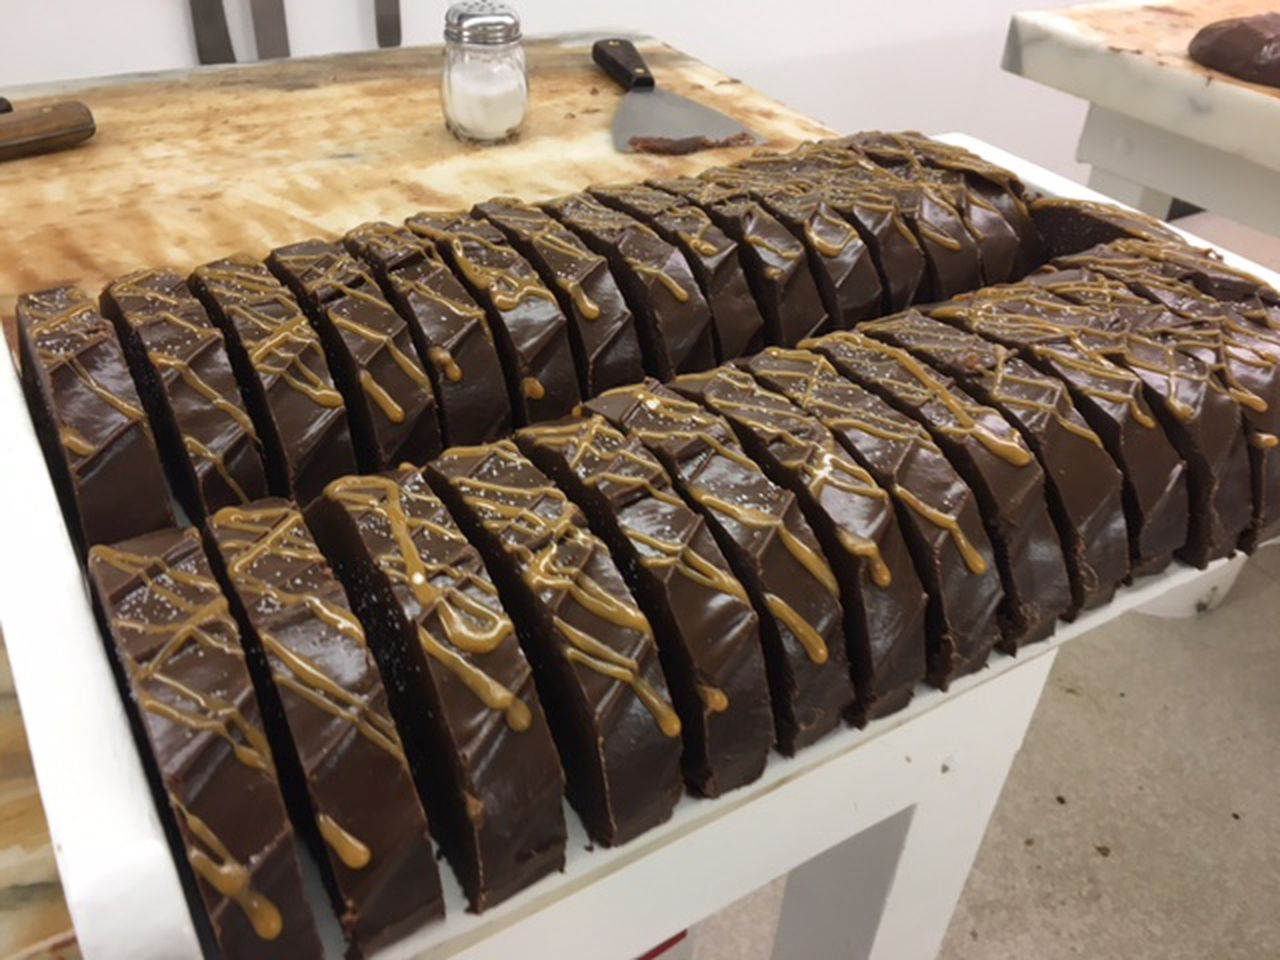 One of the most popular flavors at Original Murdick's Fudge on Mackinac Island is Double chocolate Caramel Sea Salt Fudge